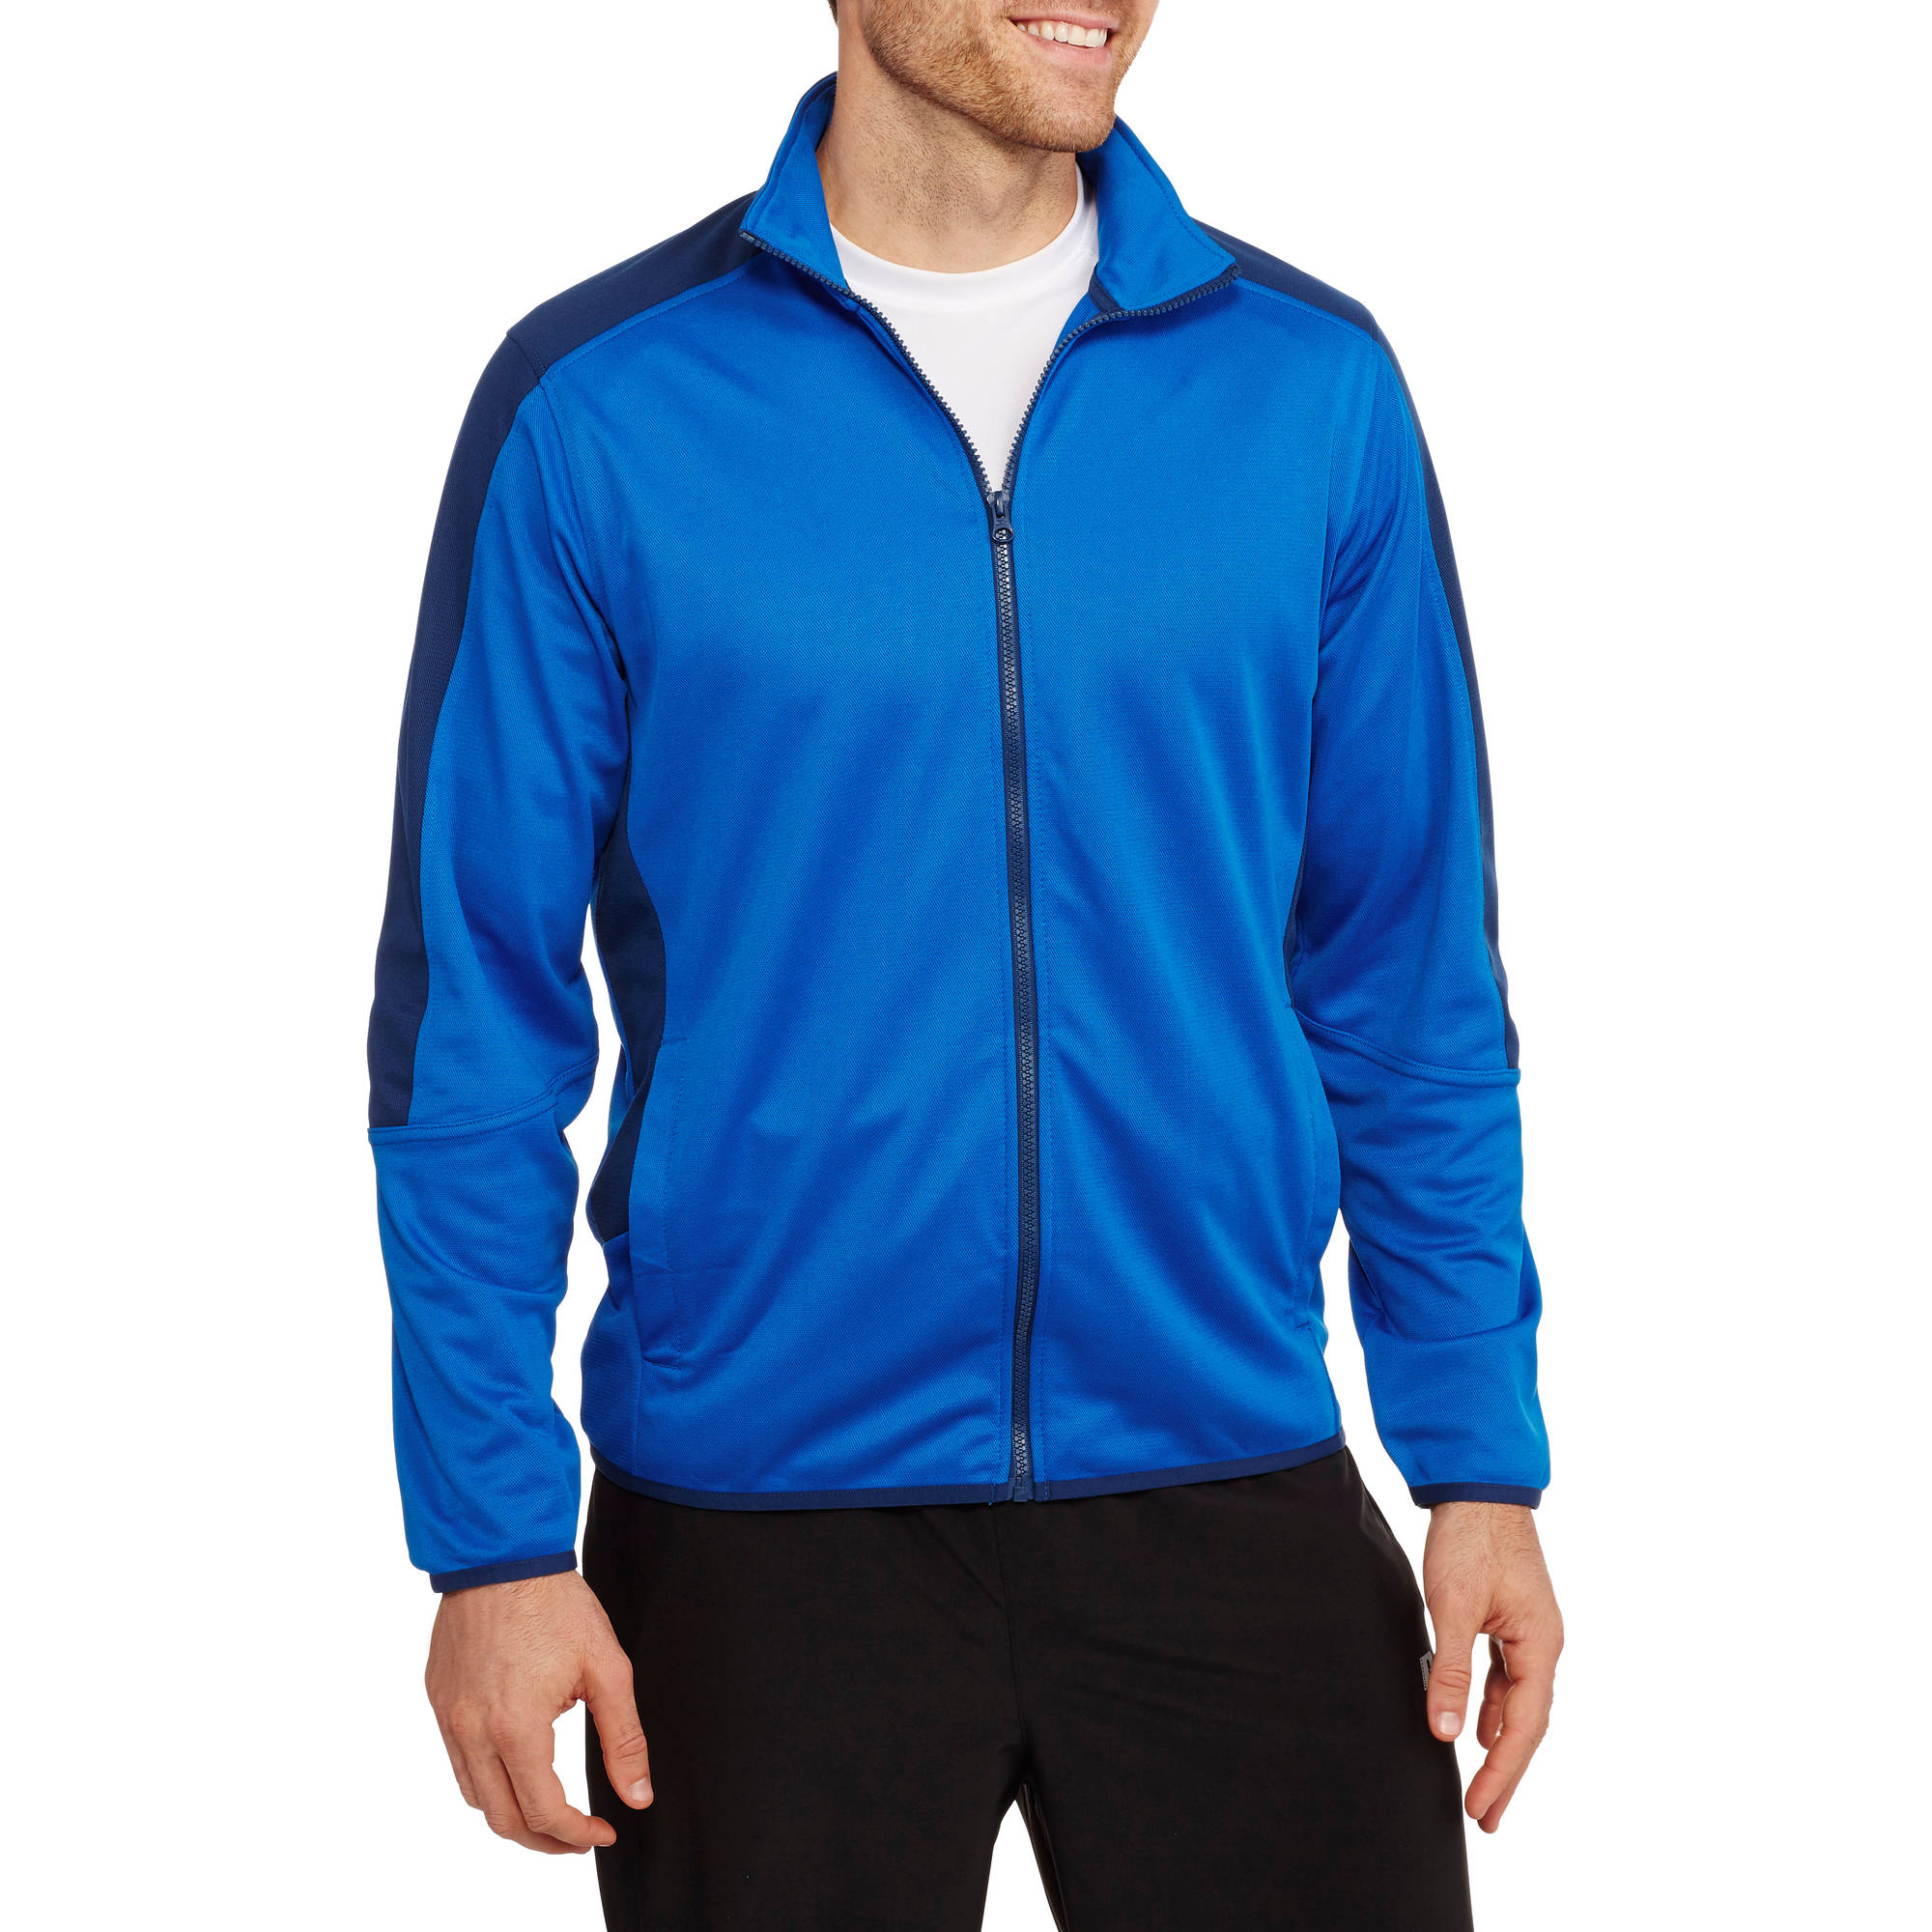 Starter Men's Performance Knit Jacket